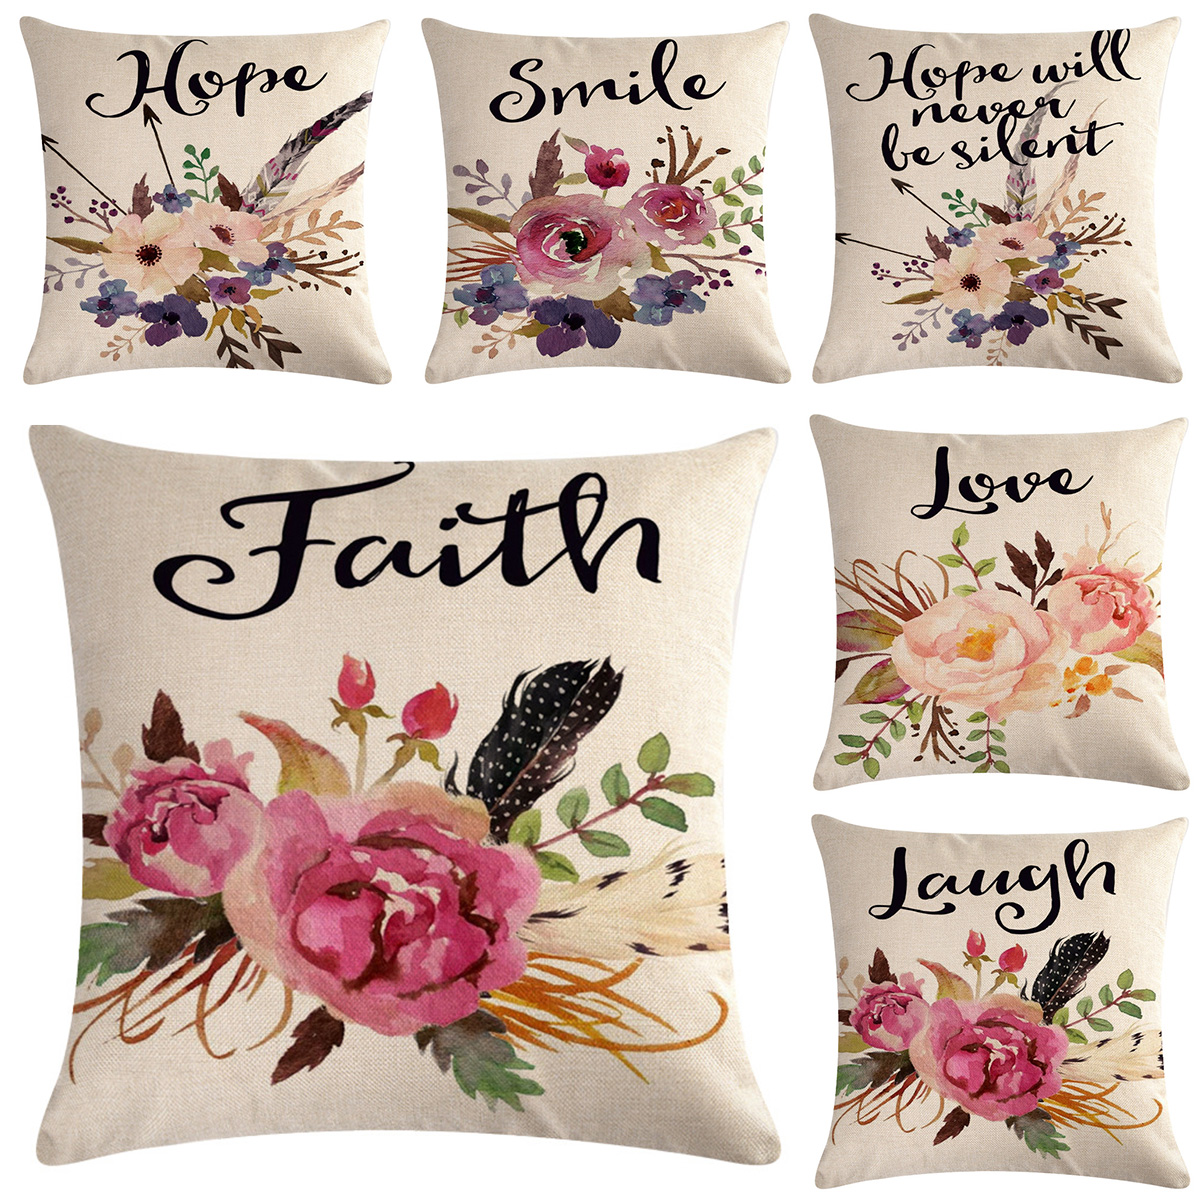 Watercolor Flowers Throw Pillow Covers Floral Leaves Cushion Covers Home Decor Ebay